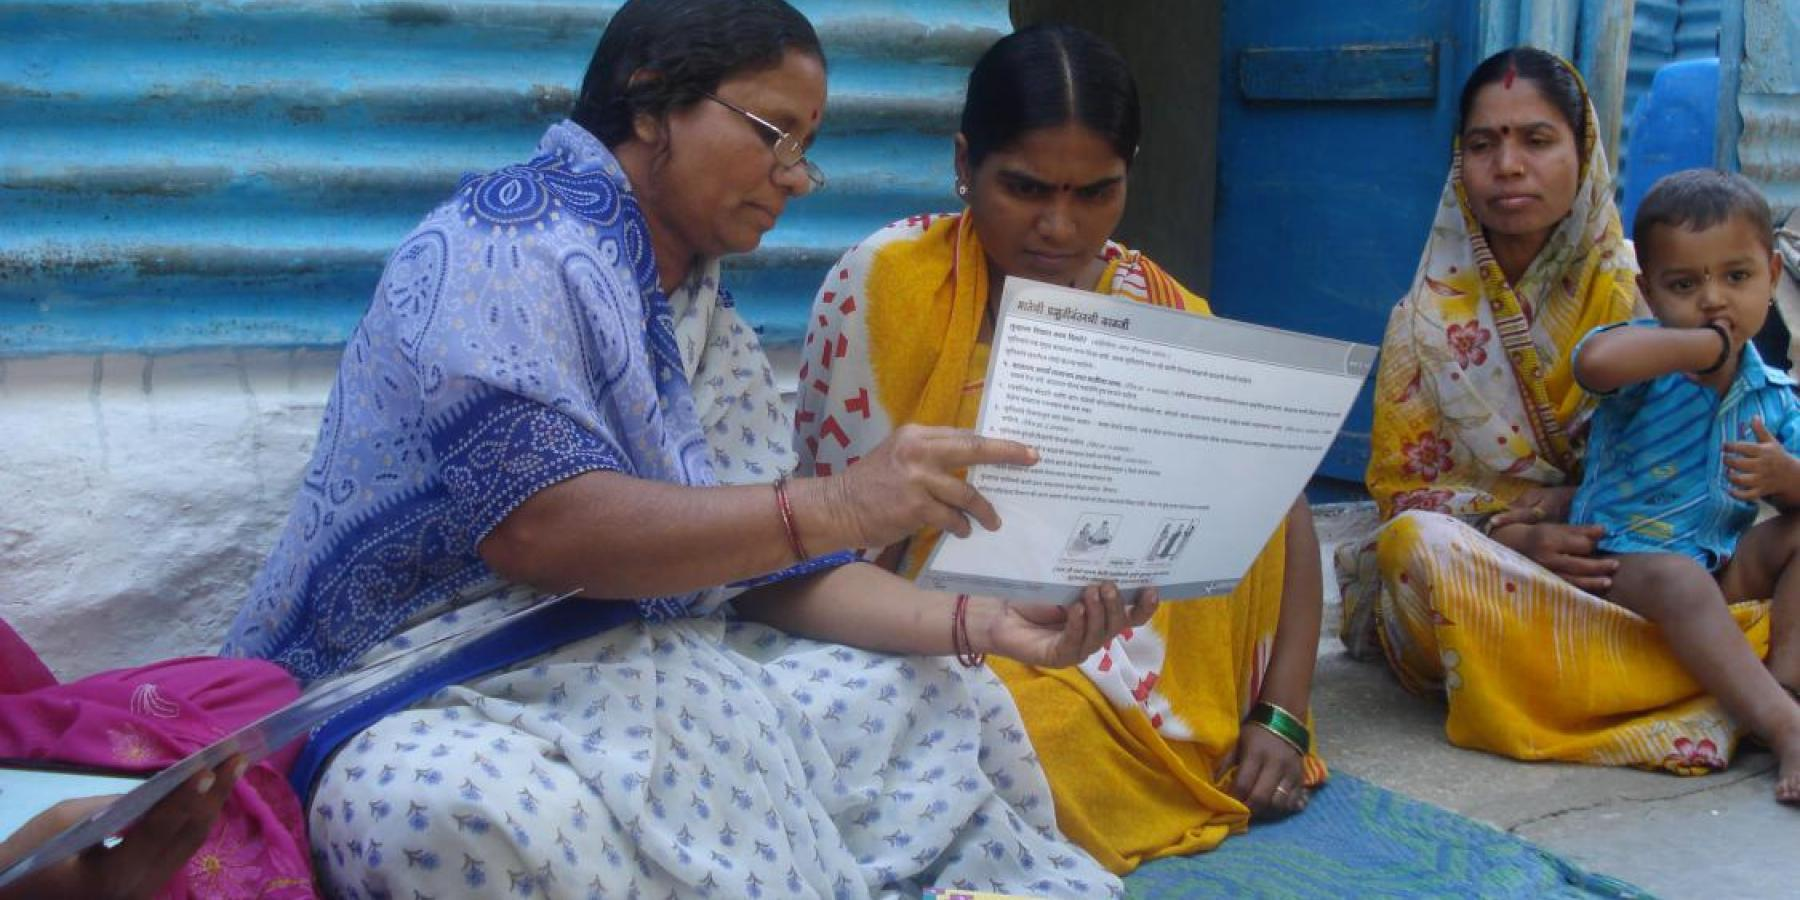 A self-help group (SHG) member provides a mother with information on infant and newborn care during a home visit in India.